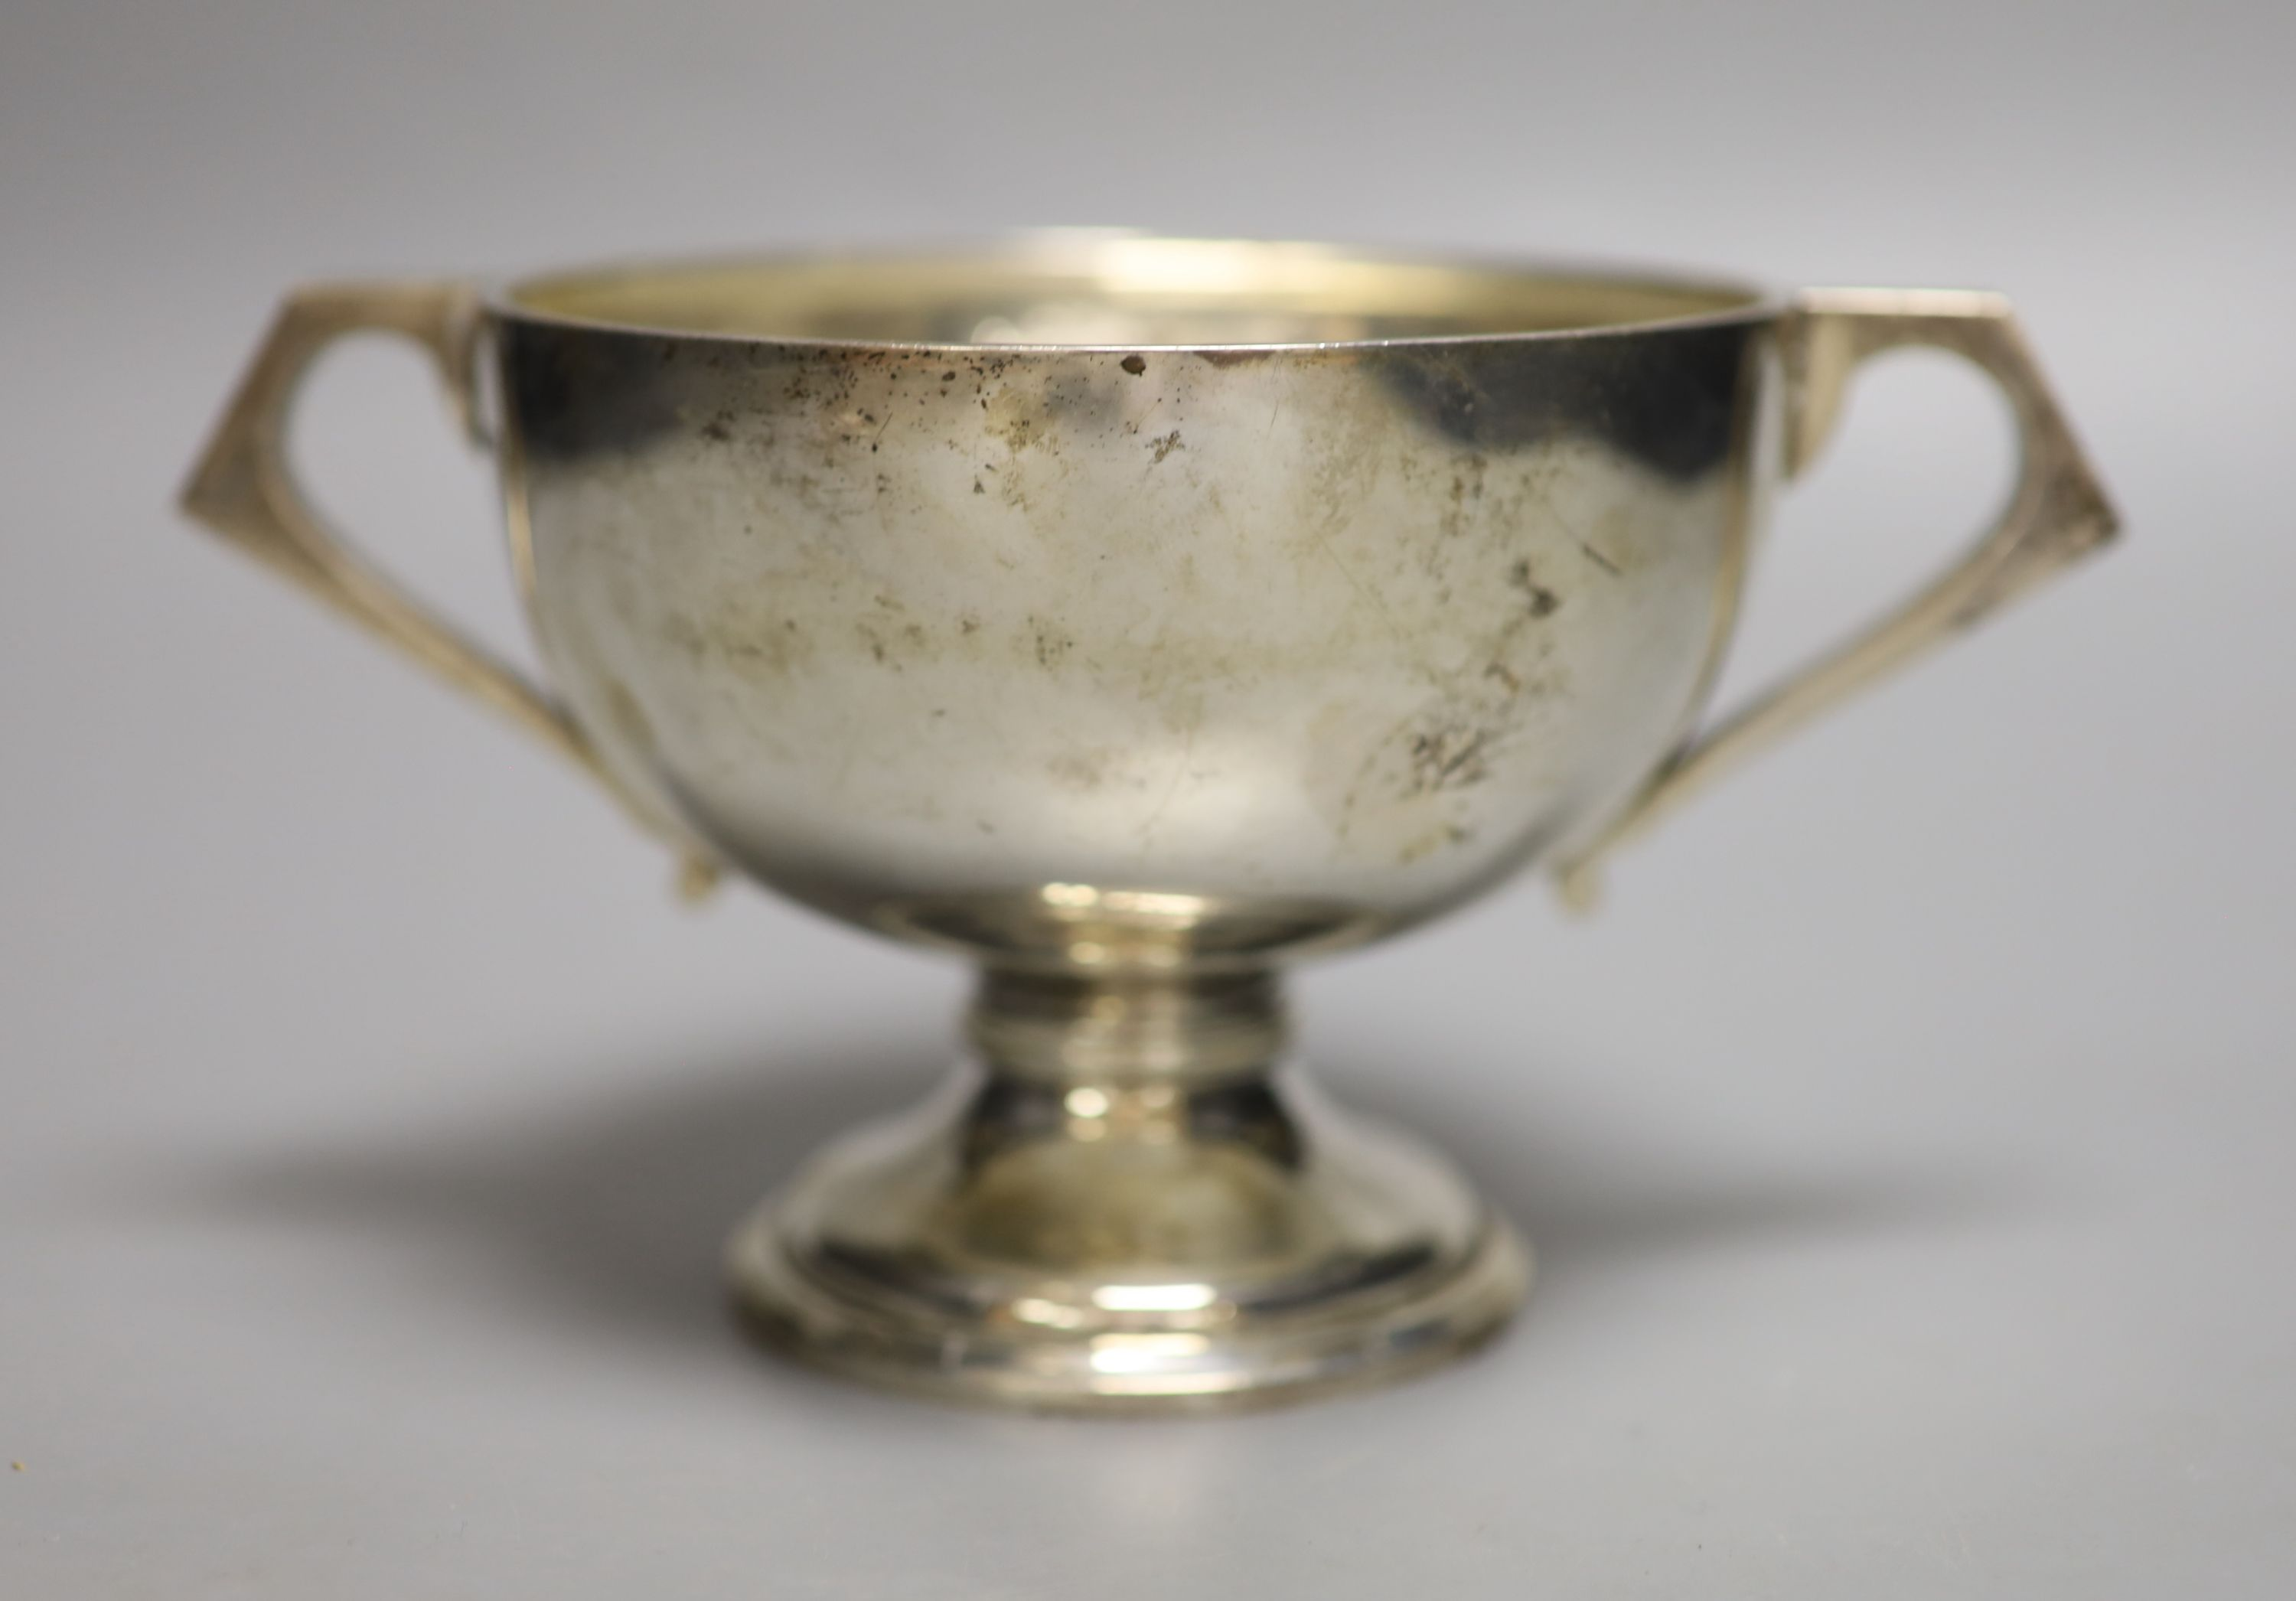 An Anglo-Indian silver two-handled pedestal rose bowl, marked C & K (Cooke & Kelvey), snake and SIL,